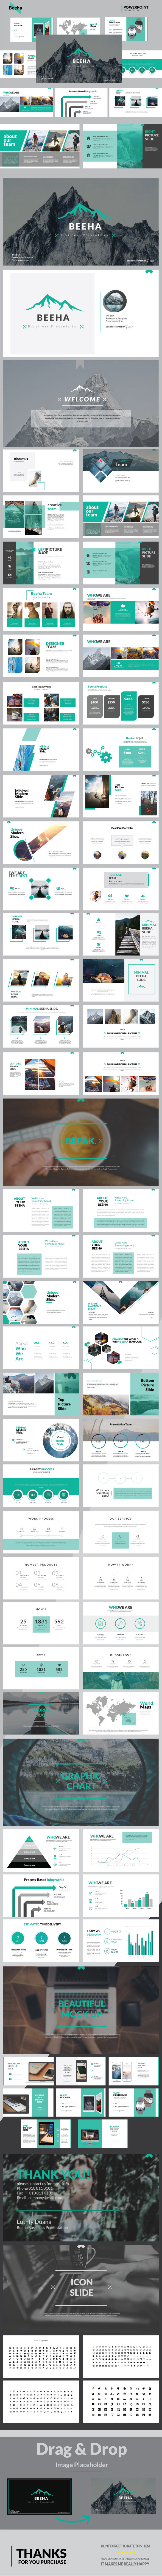 Beeha Multipurpose Presentation Templates - Business PowerPoint Templates